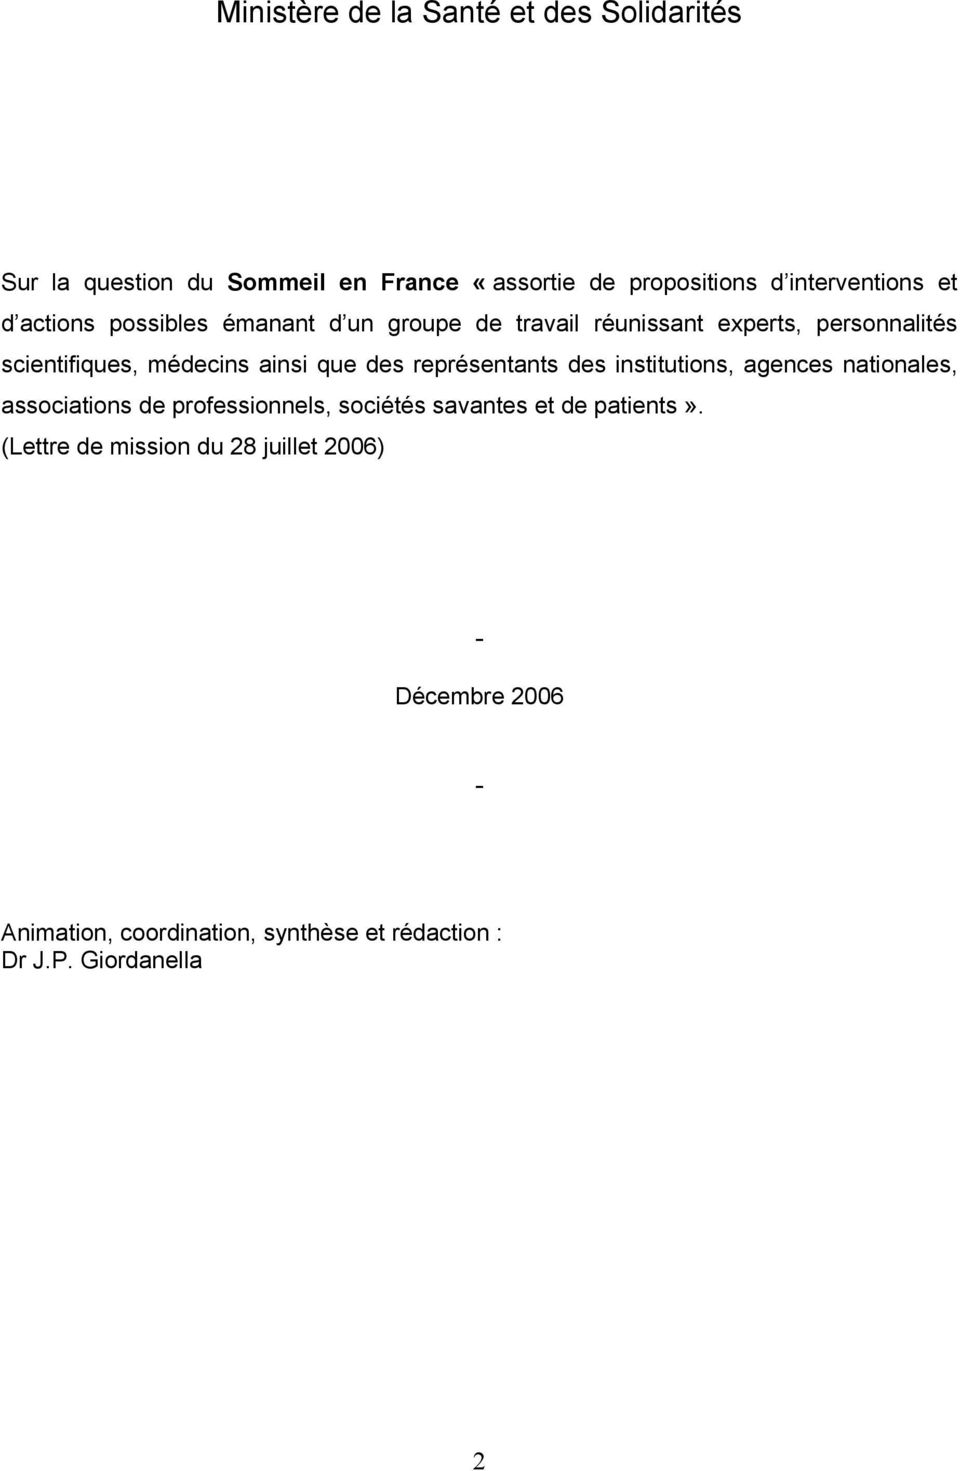 représentants des institutions, agences nationales, associations de professionnels, sociétés savantes et de patients».